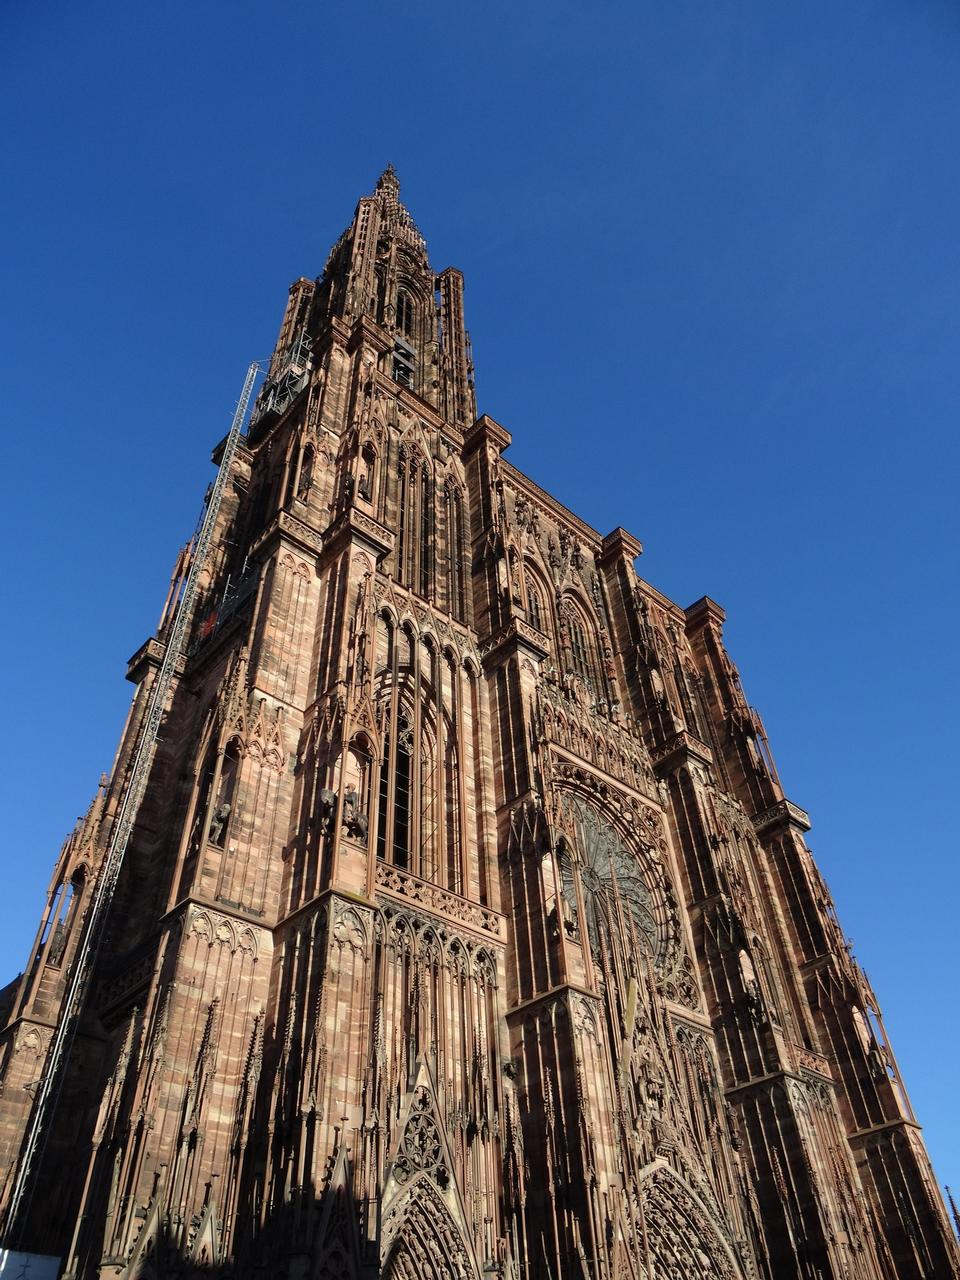 View of the facade of the Cathedral of Our Lady in Strasbourg.